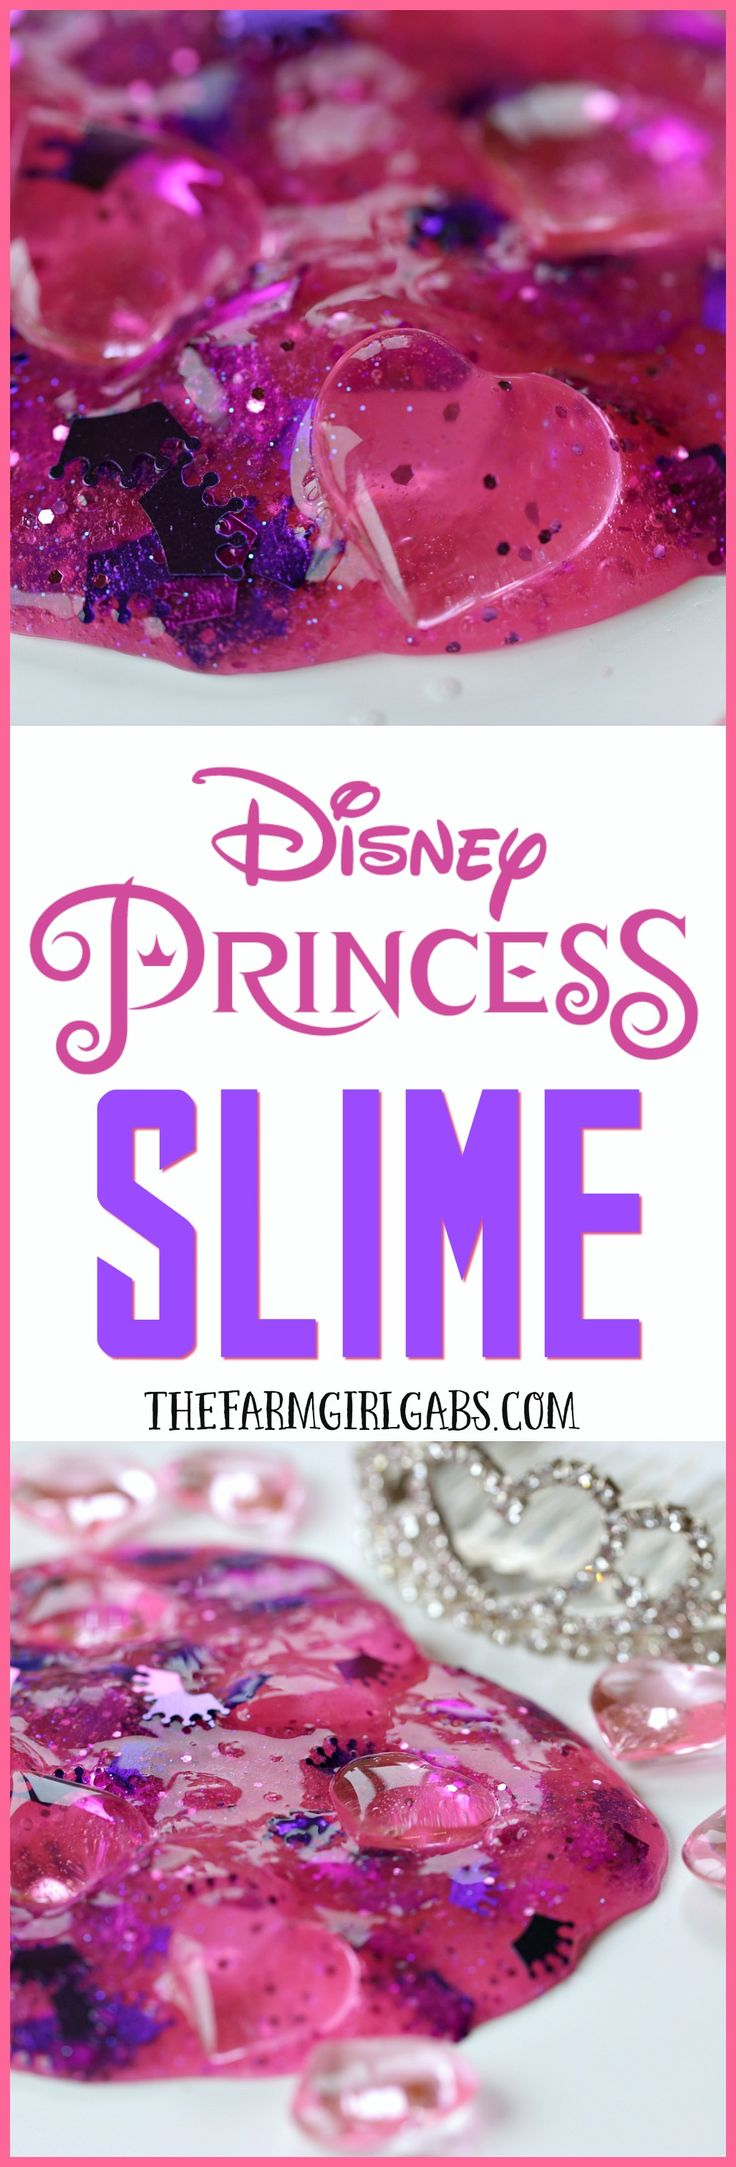 Ready for some ooey, gooey, princess fun? This Disney Princess Slime recipe is the perfect DIY boredom-buster craft for your Disney Princess.